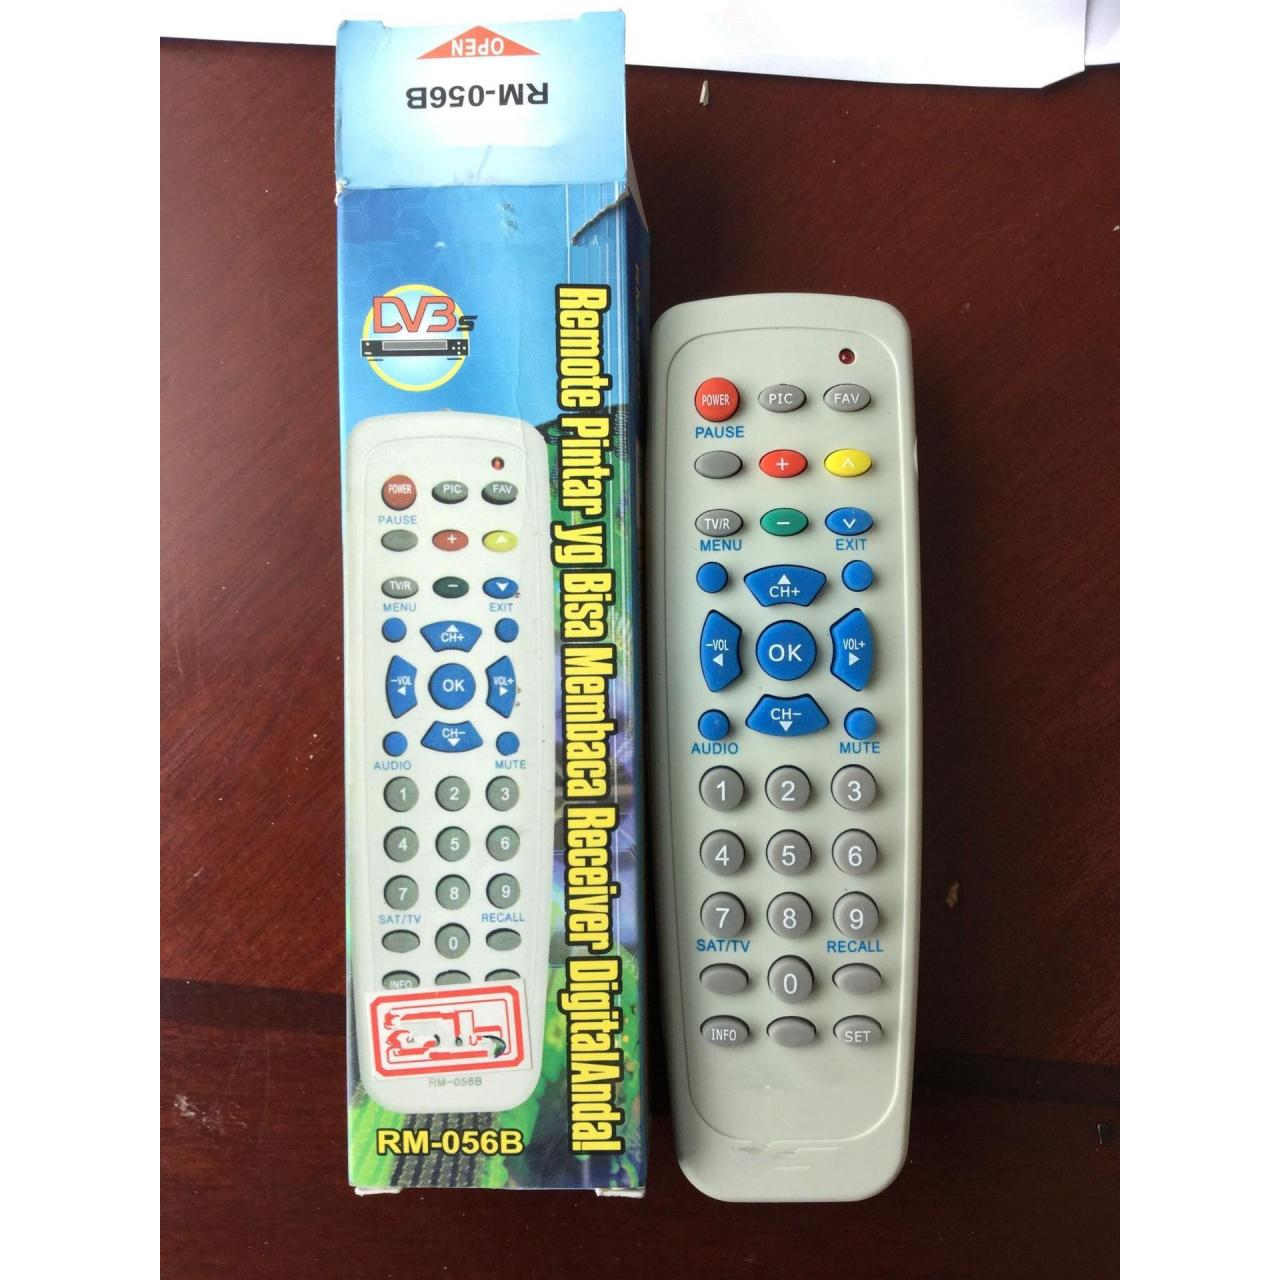 Buy cheap DVB-S remote control RM-056B from Wholesalers